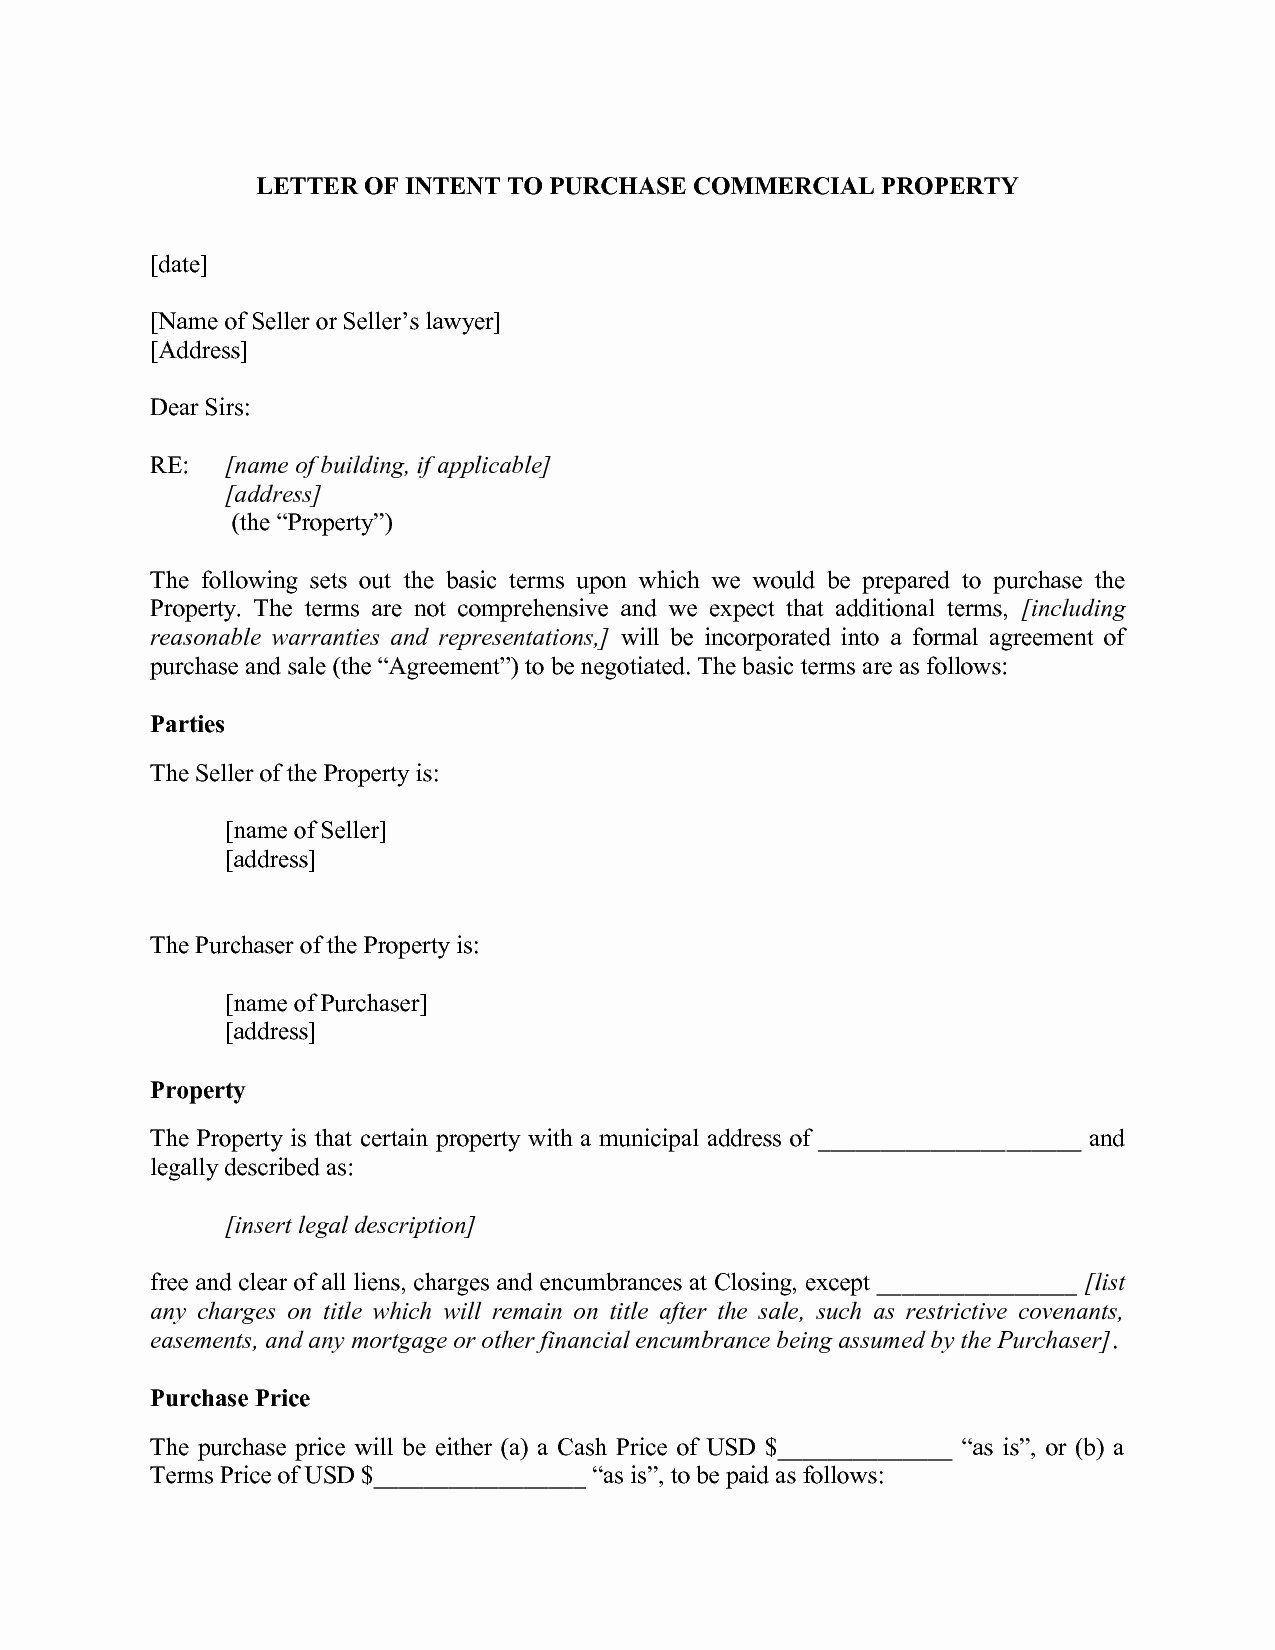 Rental Letter Of Intent Elegant Free Letter Intent To Lease Mercial Space Temp Letter Of Intent Professional Cover Letter Template Simple Cover Letter Template